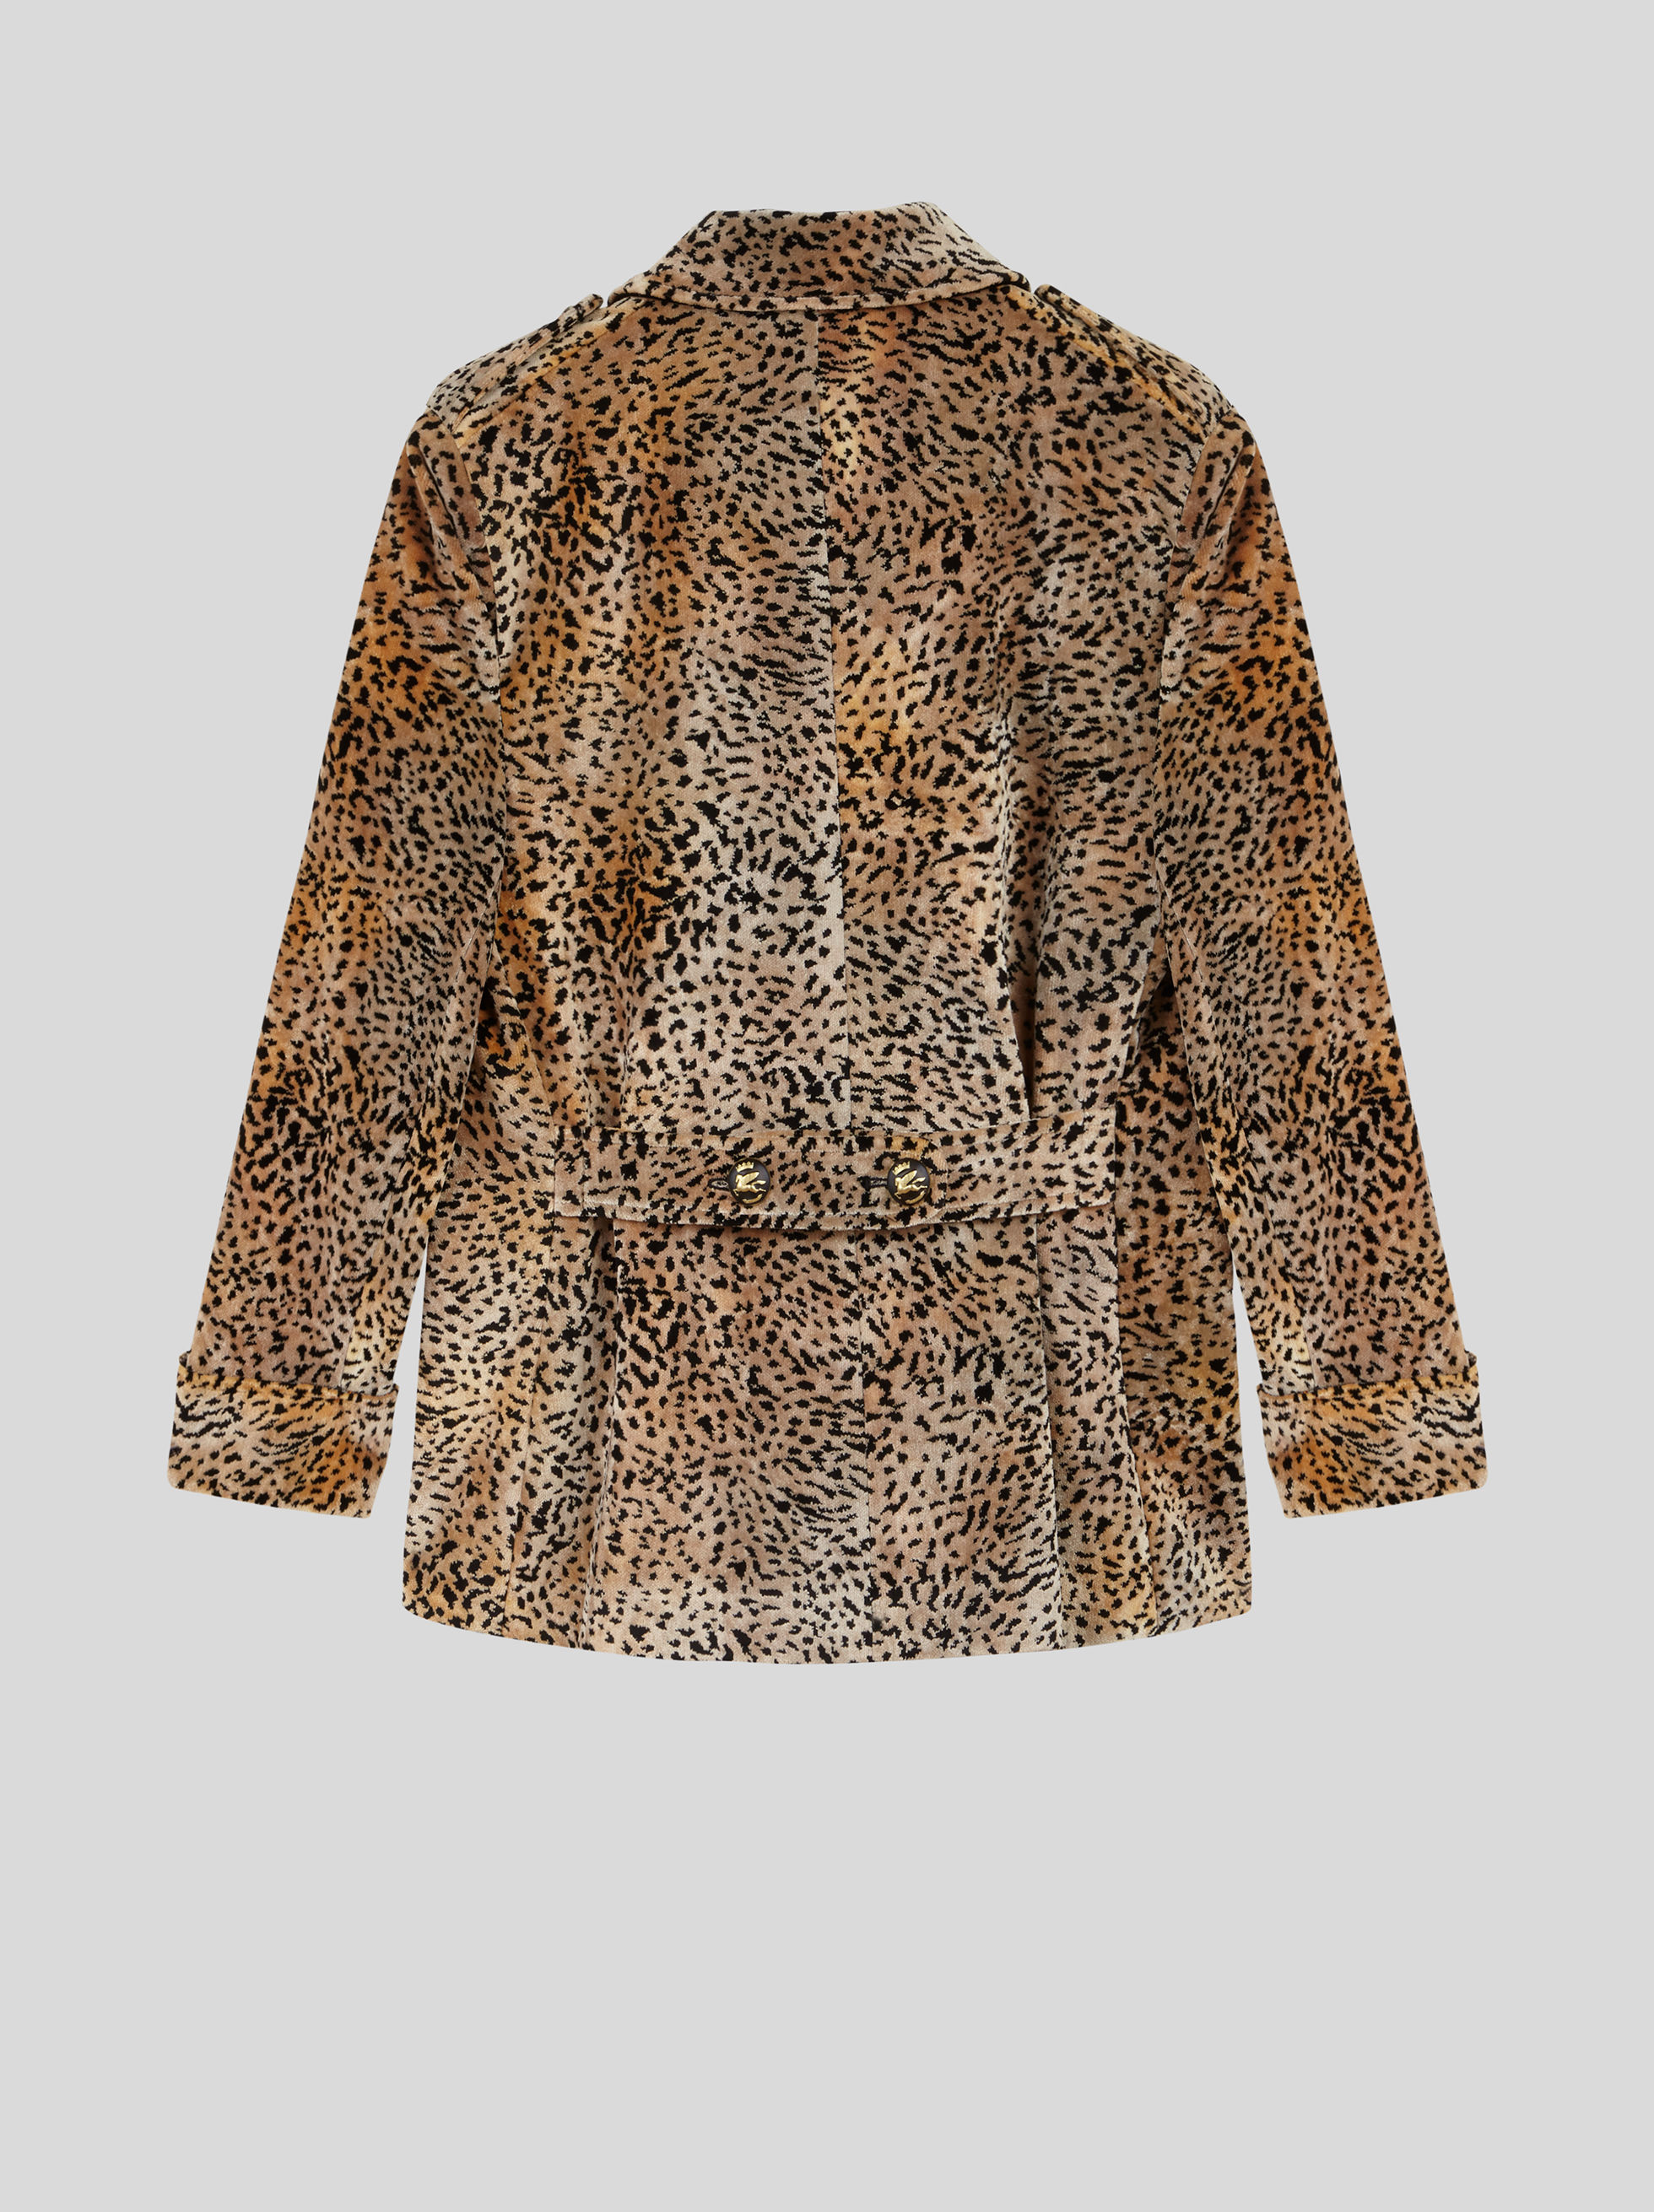 ANIMAL-PRINT VELVET PEACOAT